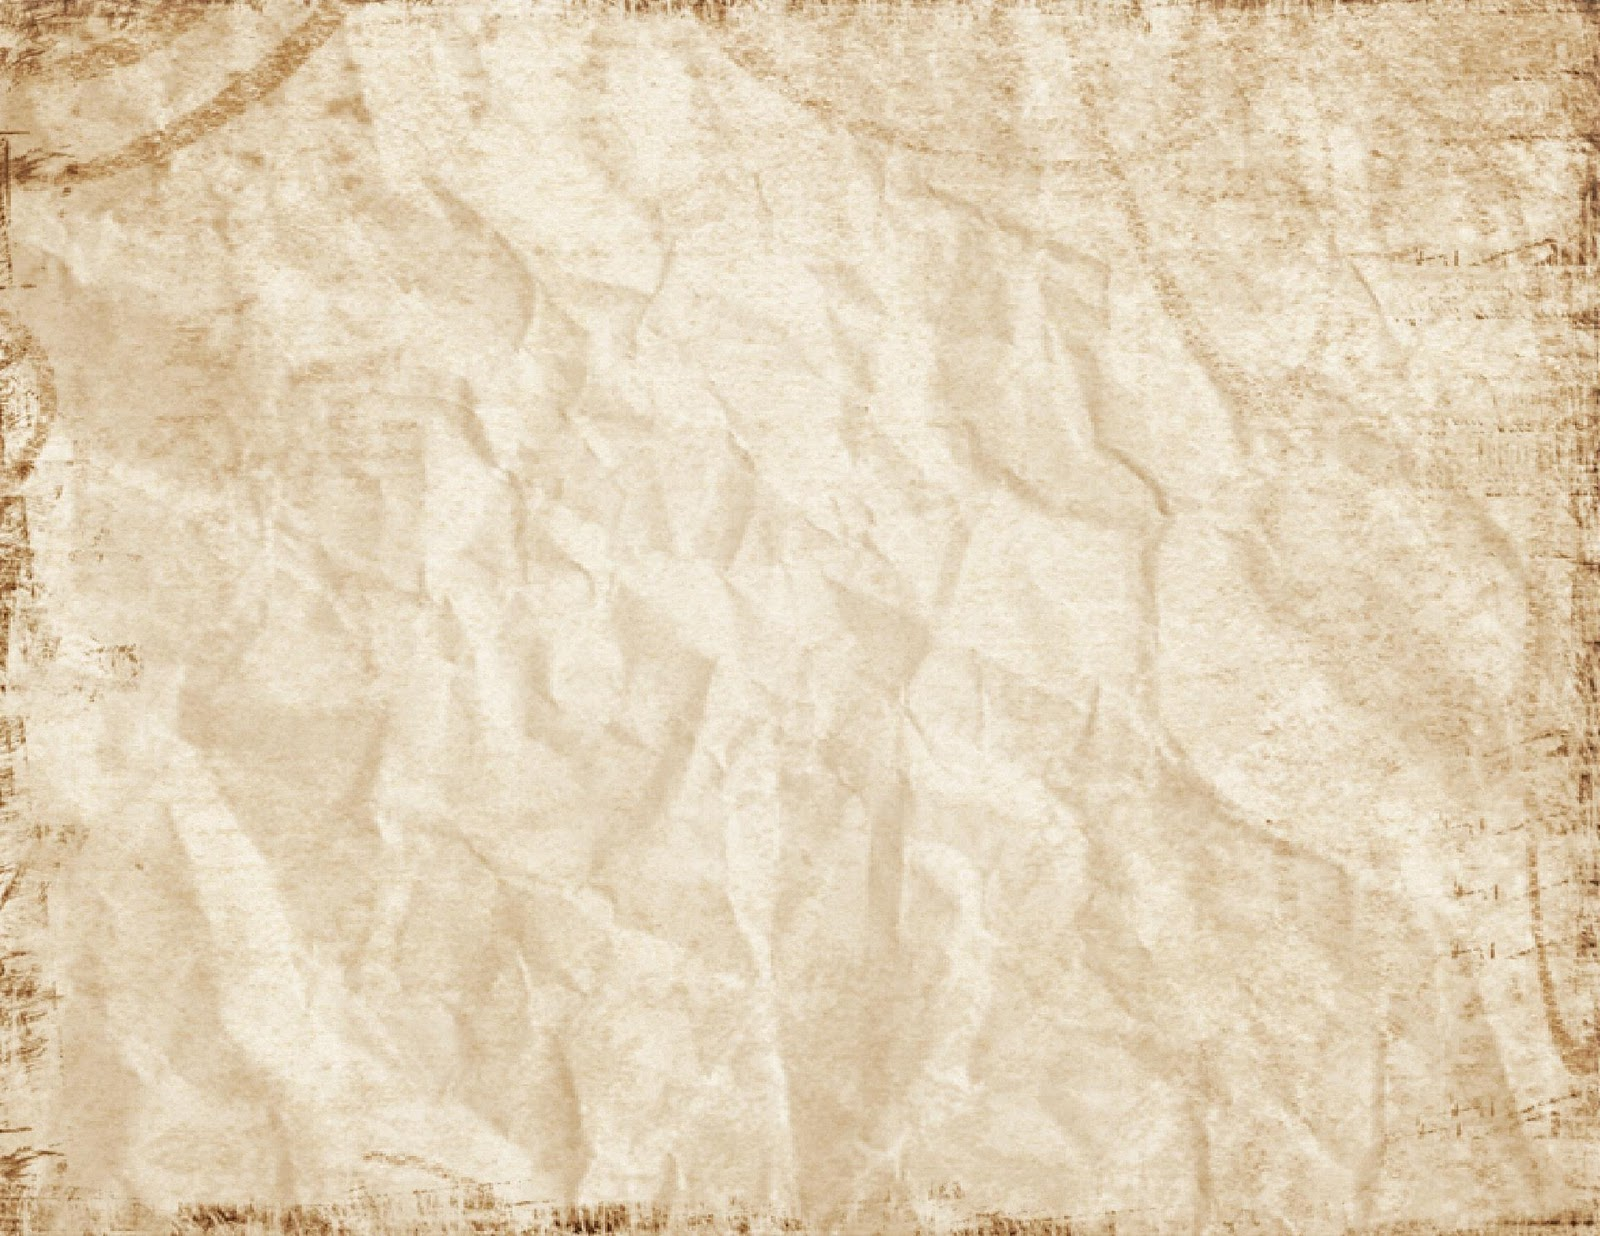 Wallpaper Old texture crumpled brown paper